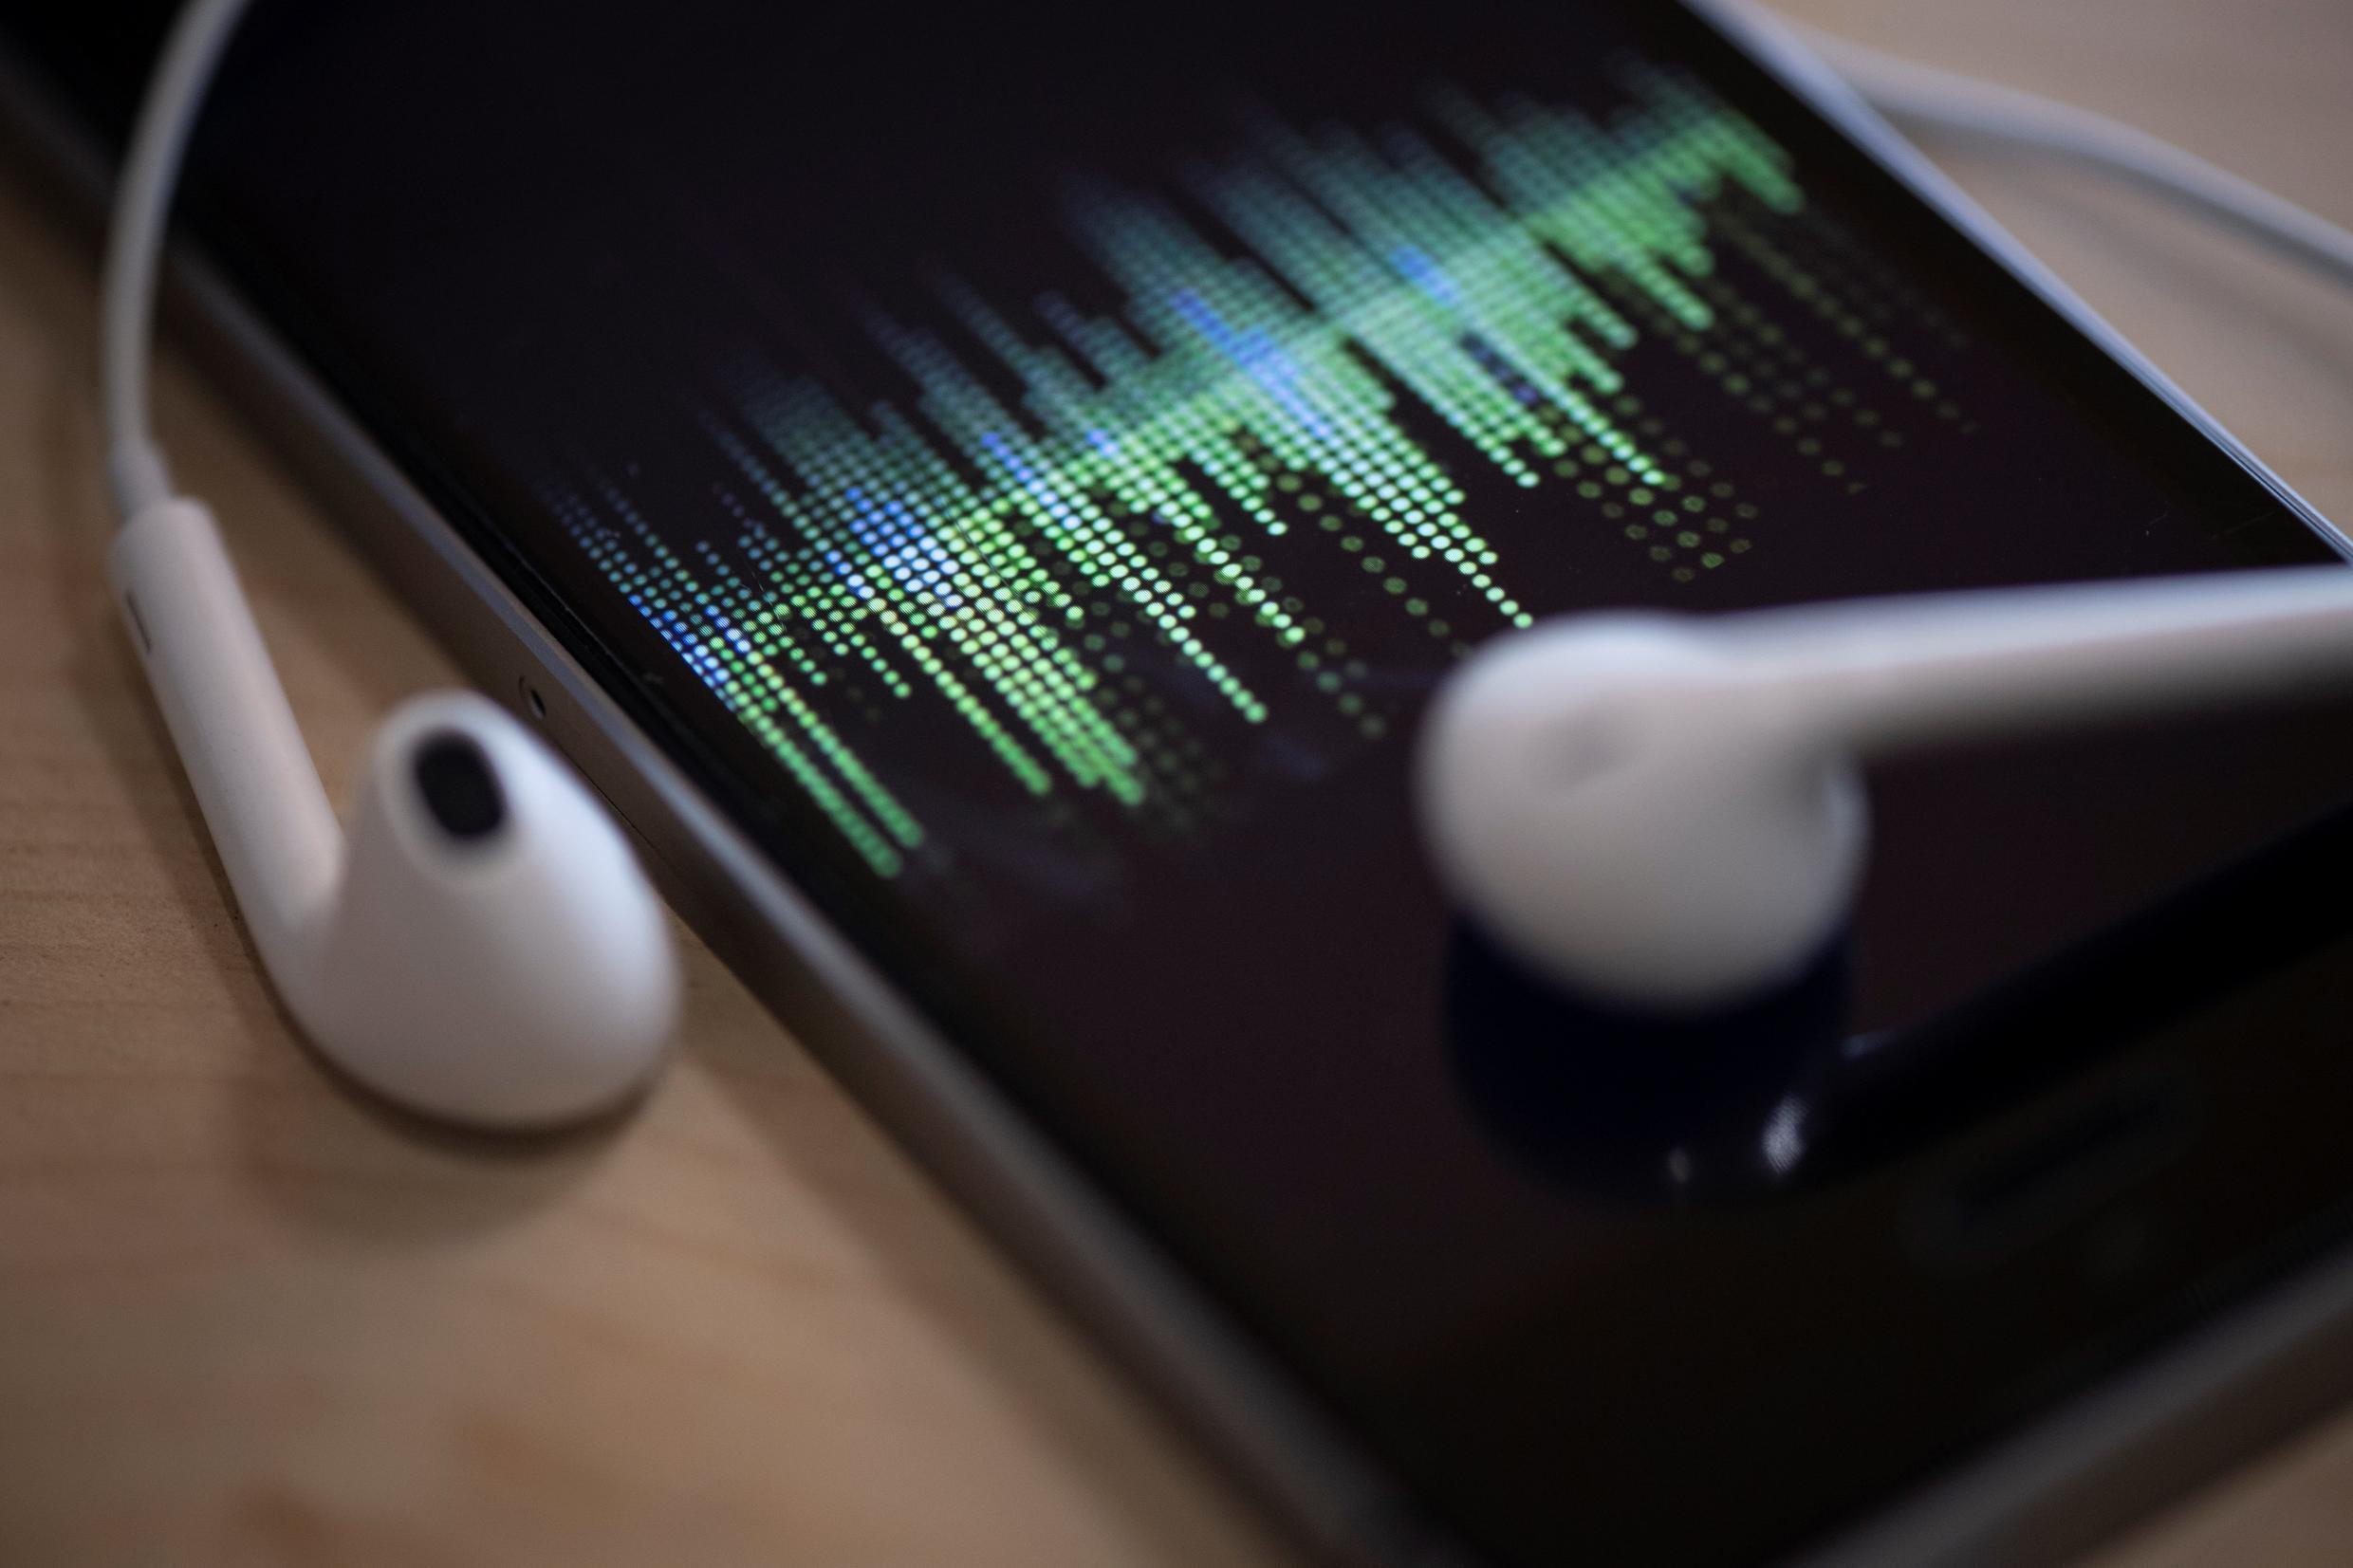 Apple's new podcast subscription option could help the iPhone maker keep more content amid surging growth in the segment from Spotify